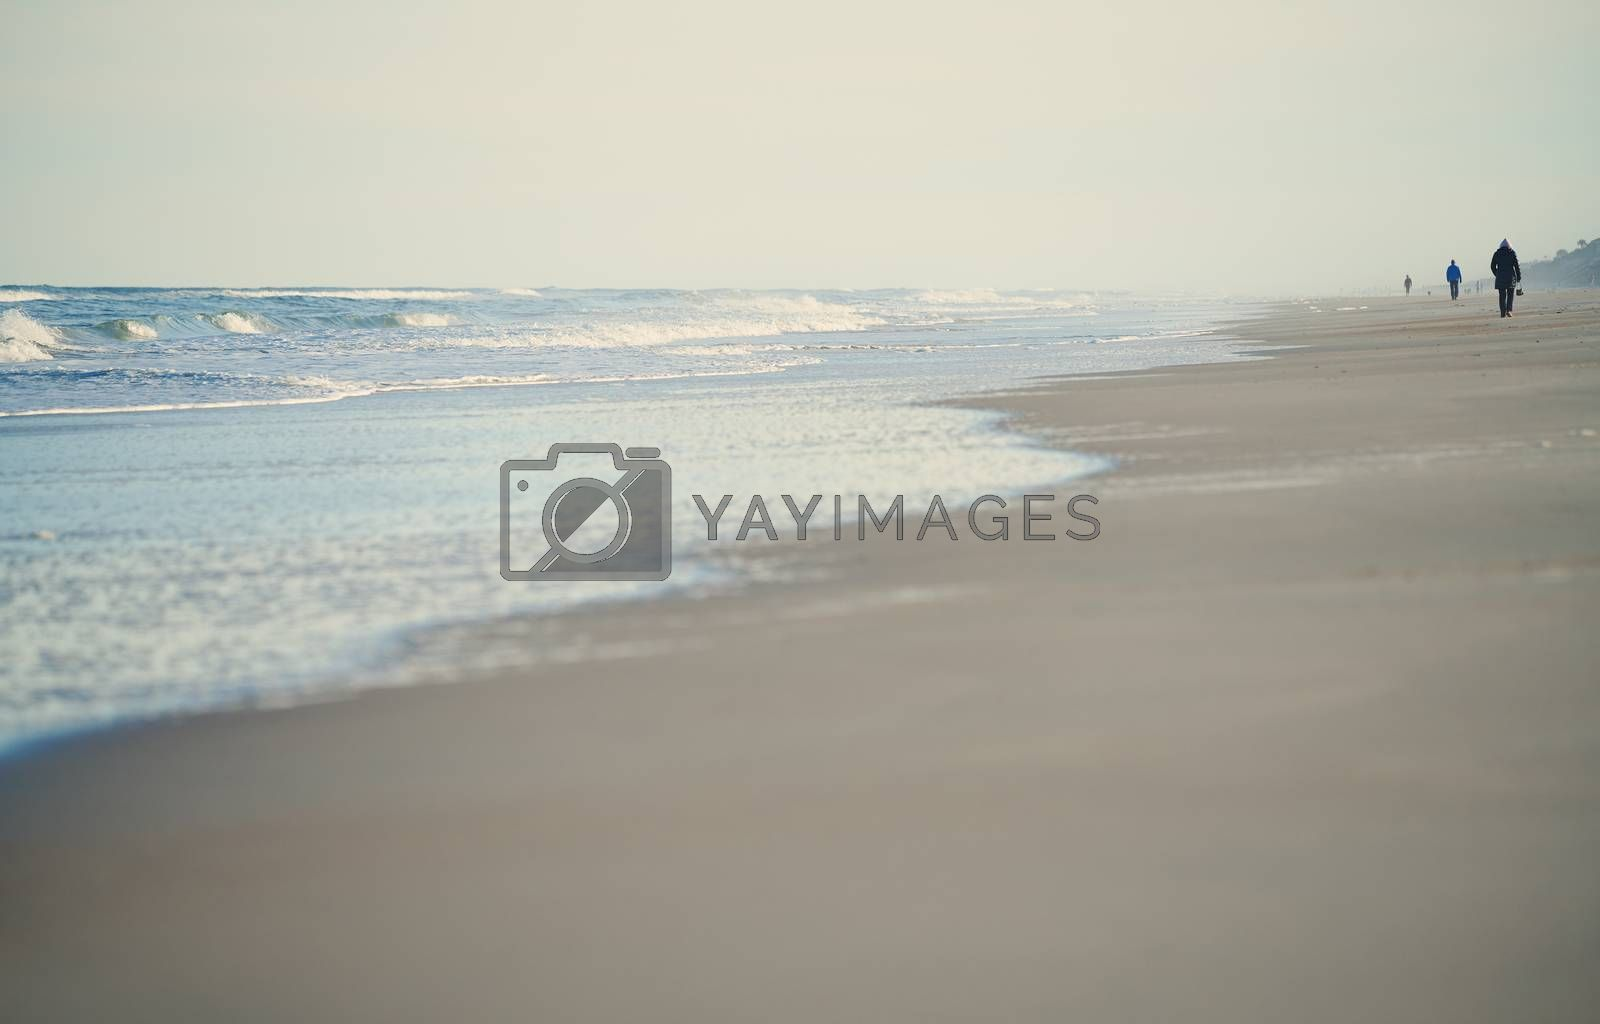 Incidental people walking along the beach of Atlantic Ocean. USA by Novic